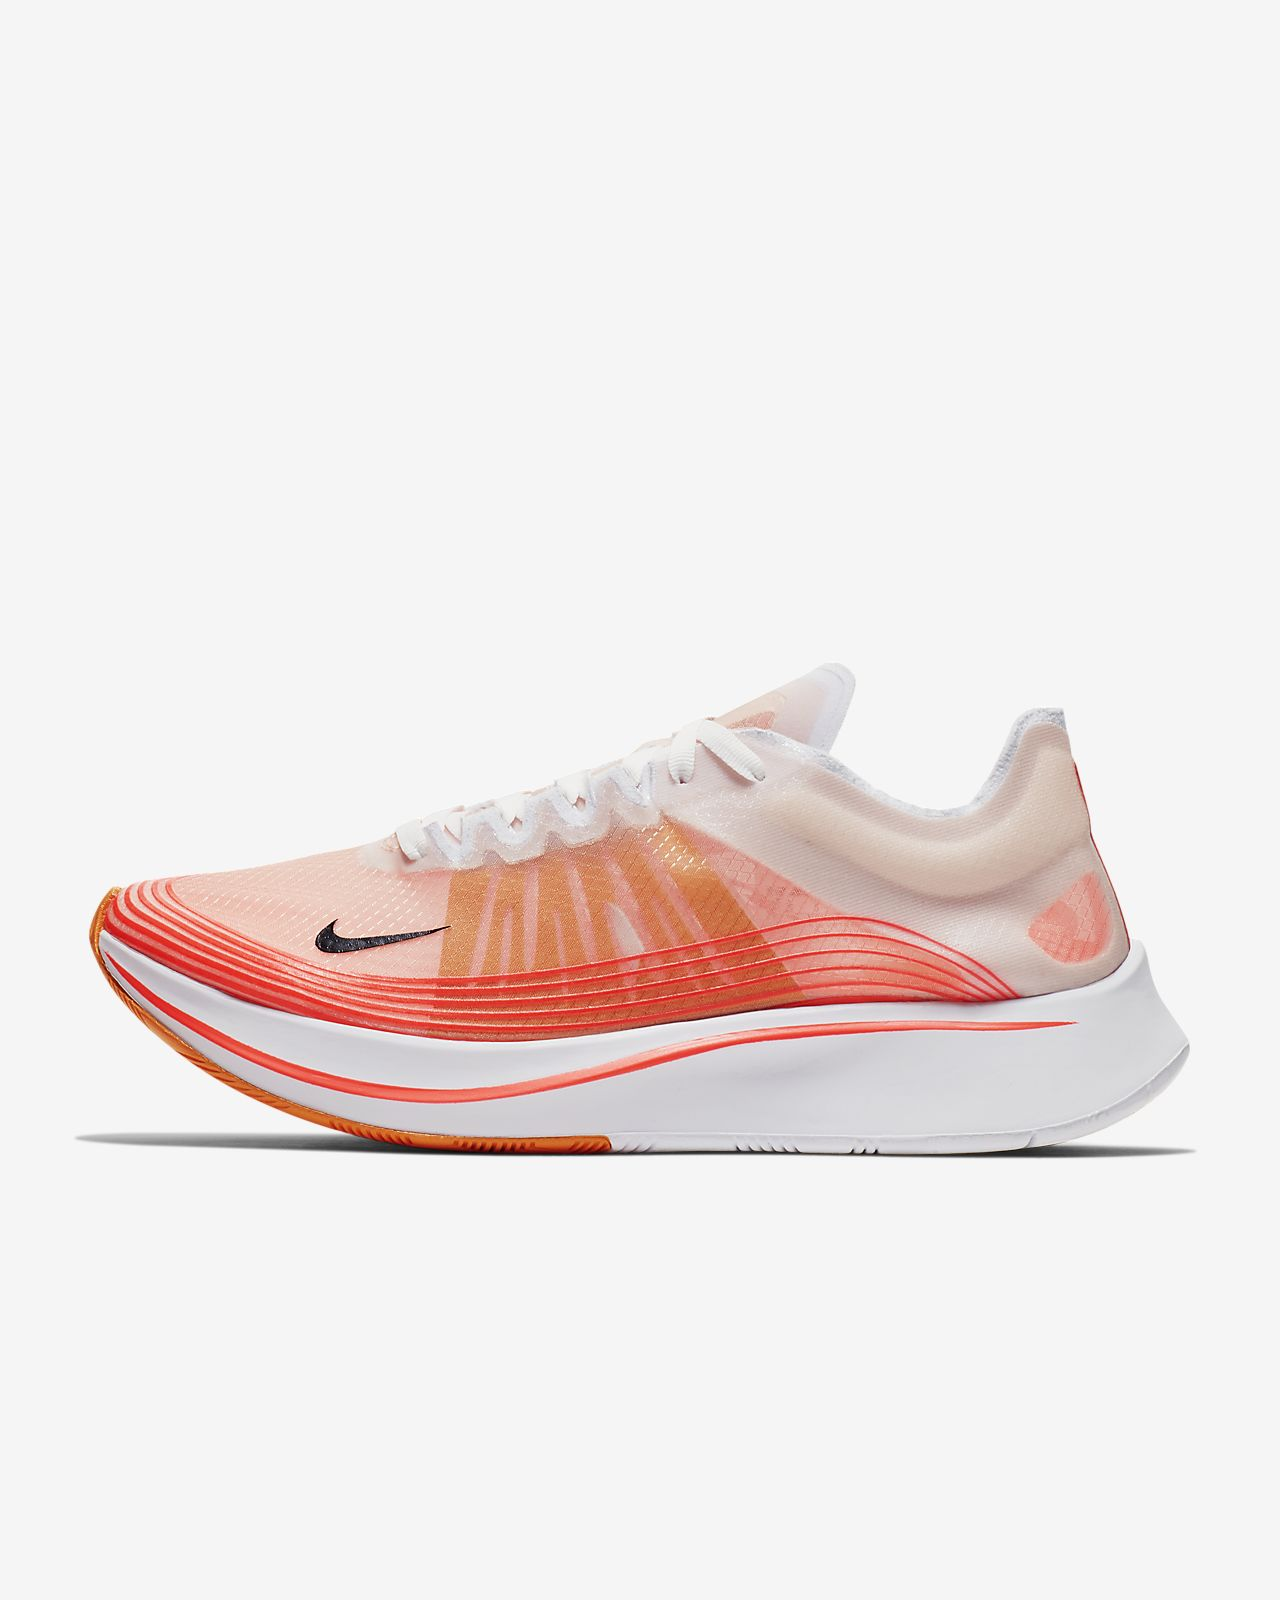 Nike Sp Shoe Zoom Running Women's Fly fqHfZrv